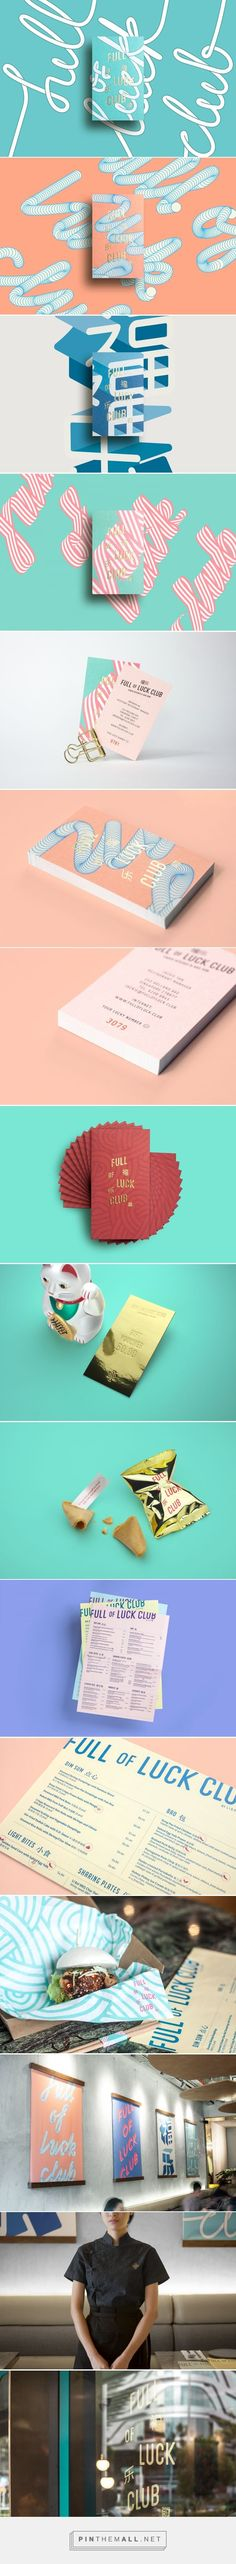 Branding | Graphic Design | Full of Luck Club by Bravo on Behance                                                                                                                                                                                 More